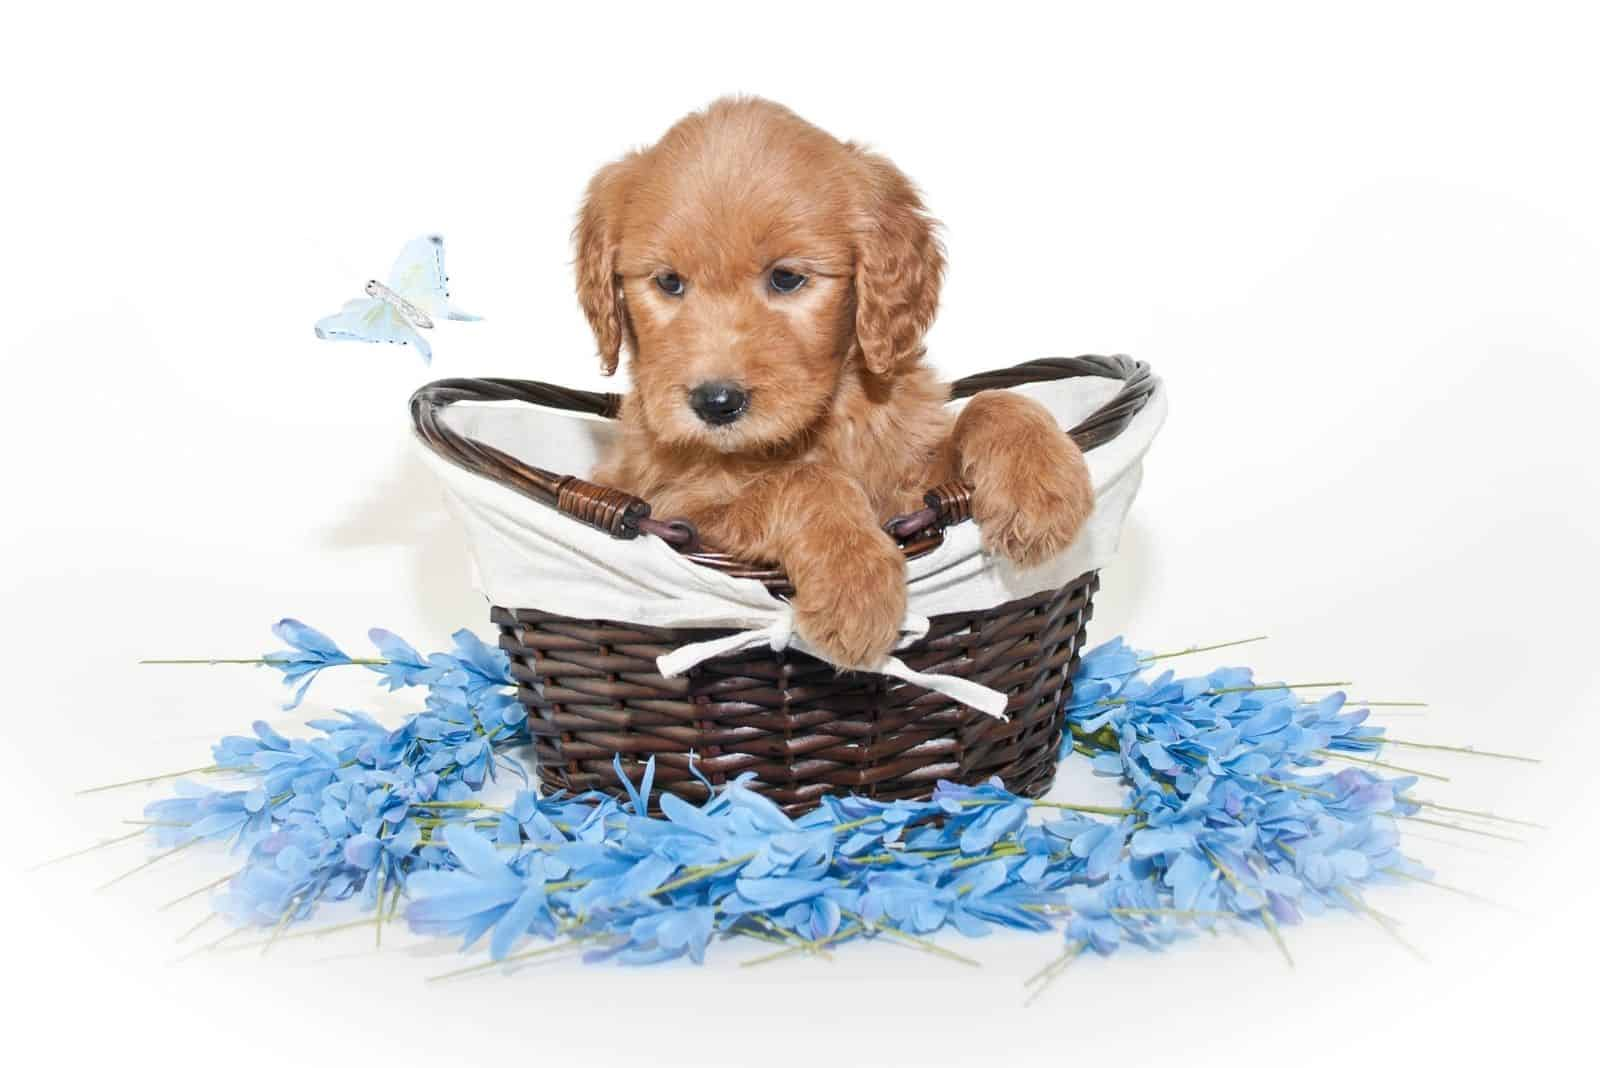 goldendoodle puppy inside a basket with blue flowers around in white background